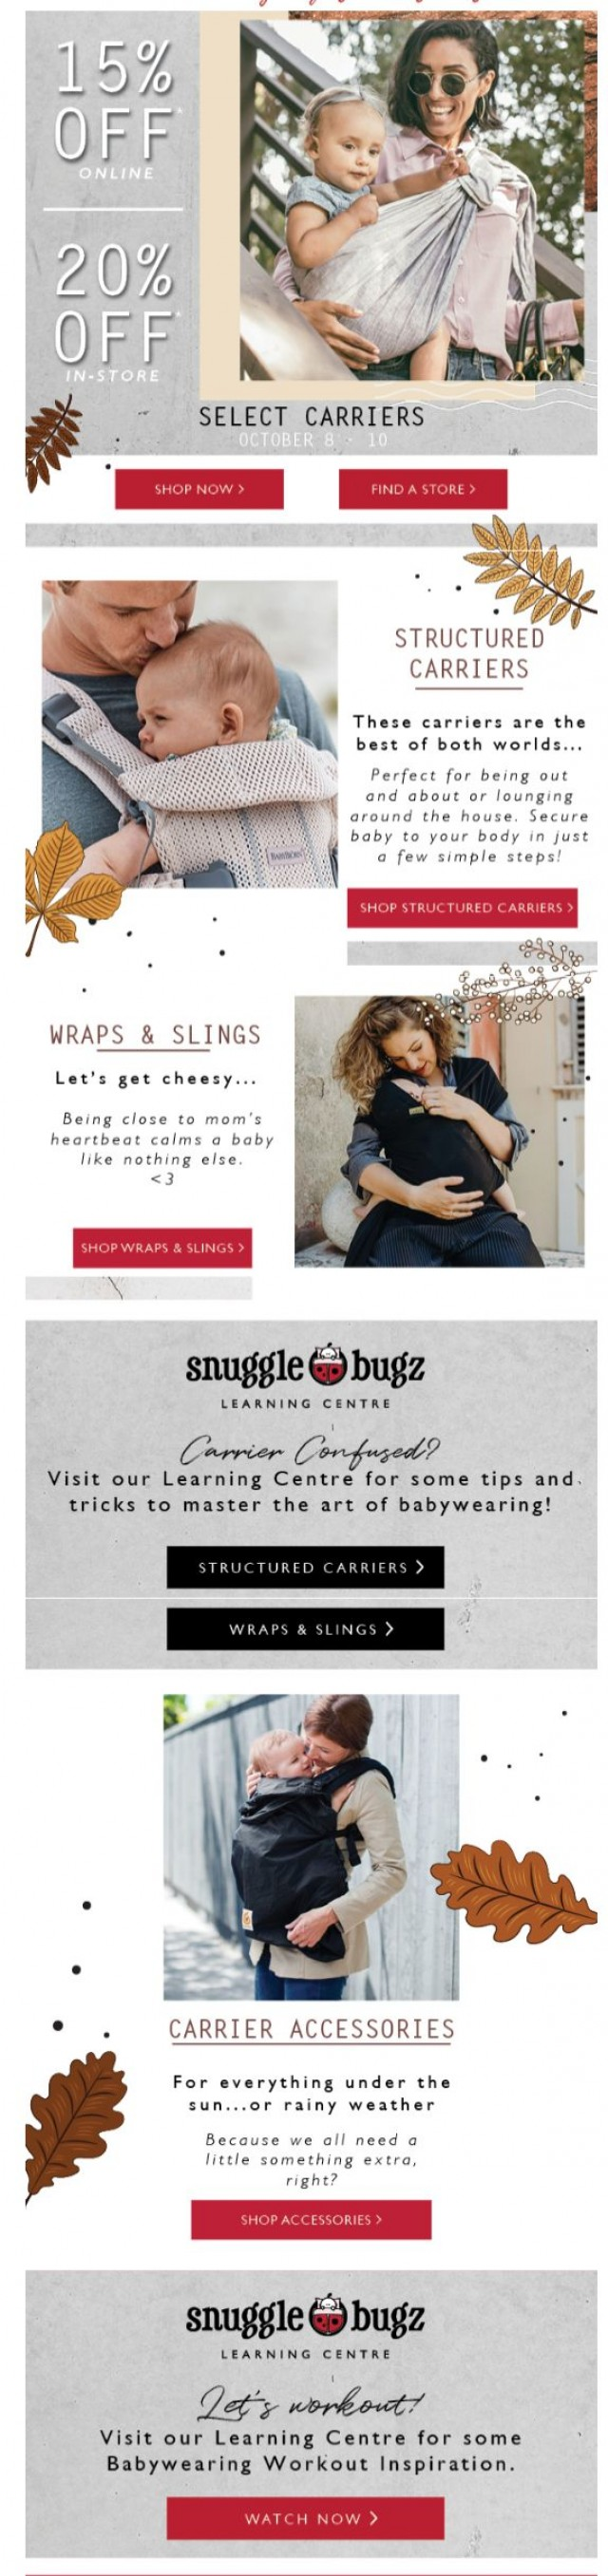 Coupon for: Snuggle Bugz - Get Carried Away with Up to 20% off Carriers!